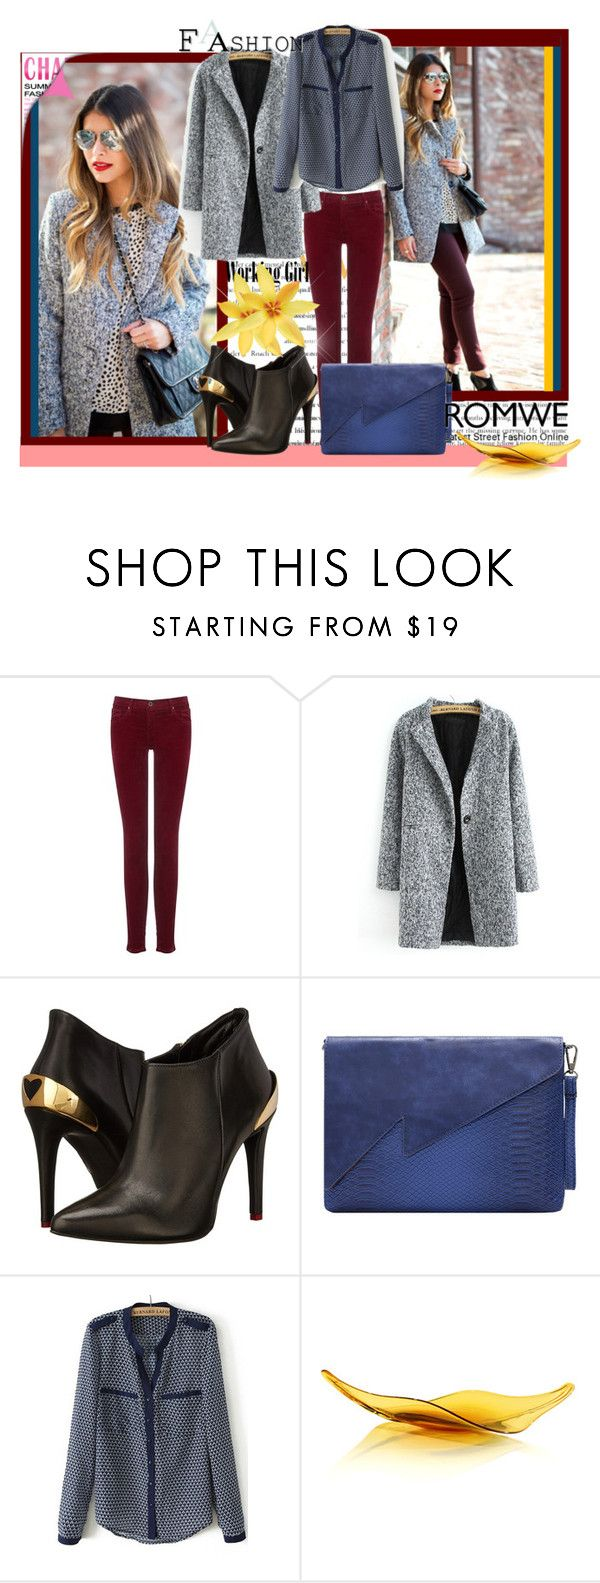 """Romwe VI-1"" by azra-90 ❤ liked on Polyvore featuring PAM, AG Adriano Goldschmied, Love Moschino and romwe"